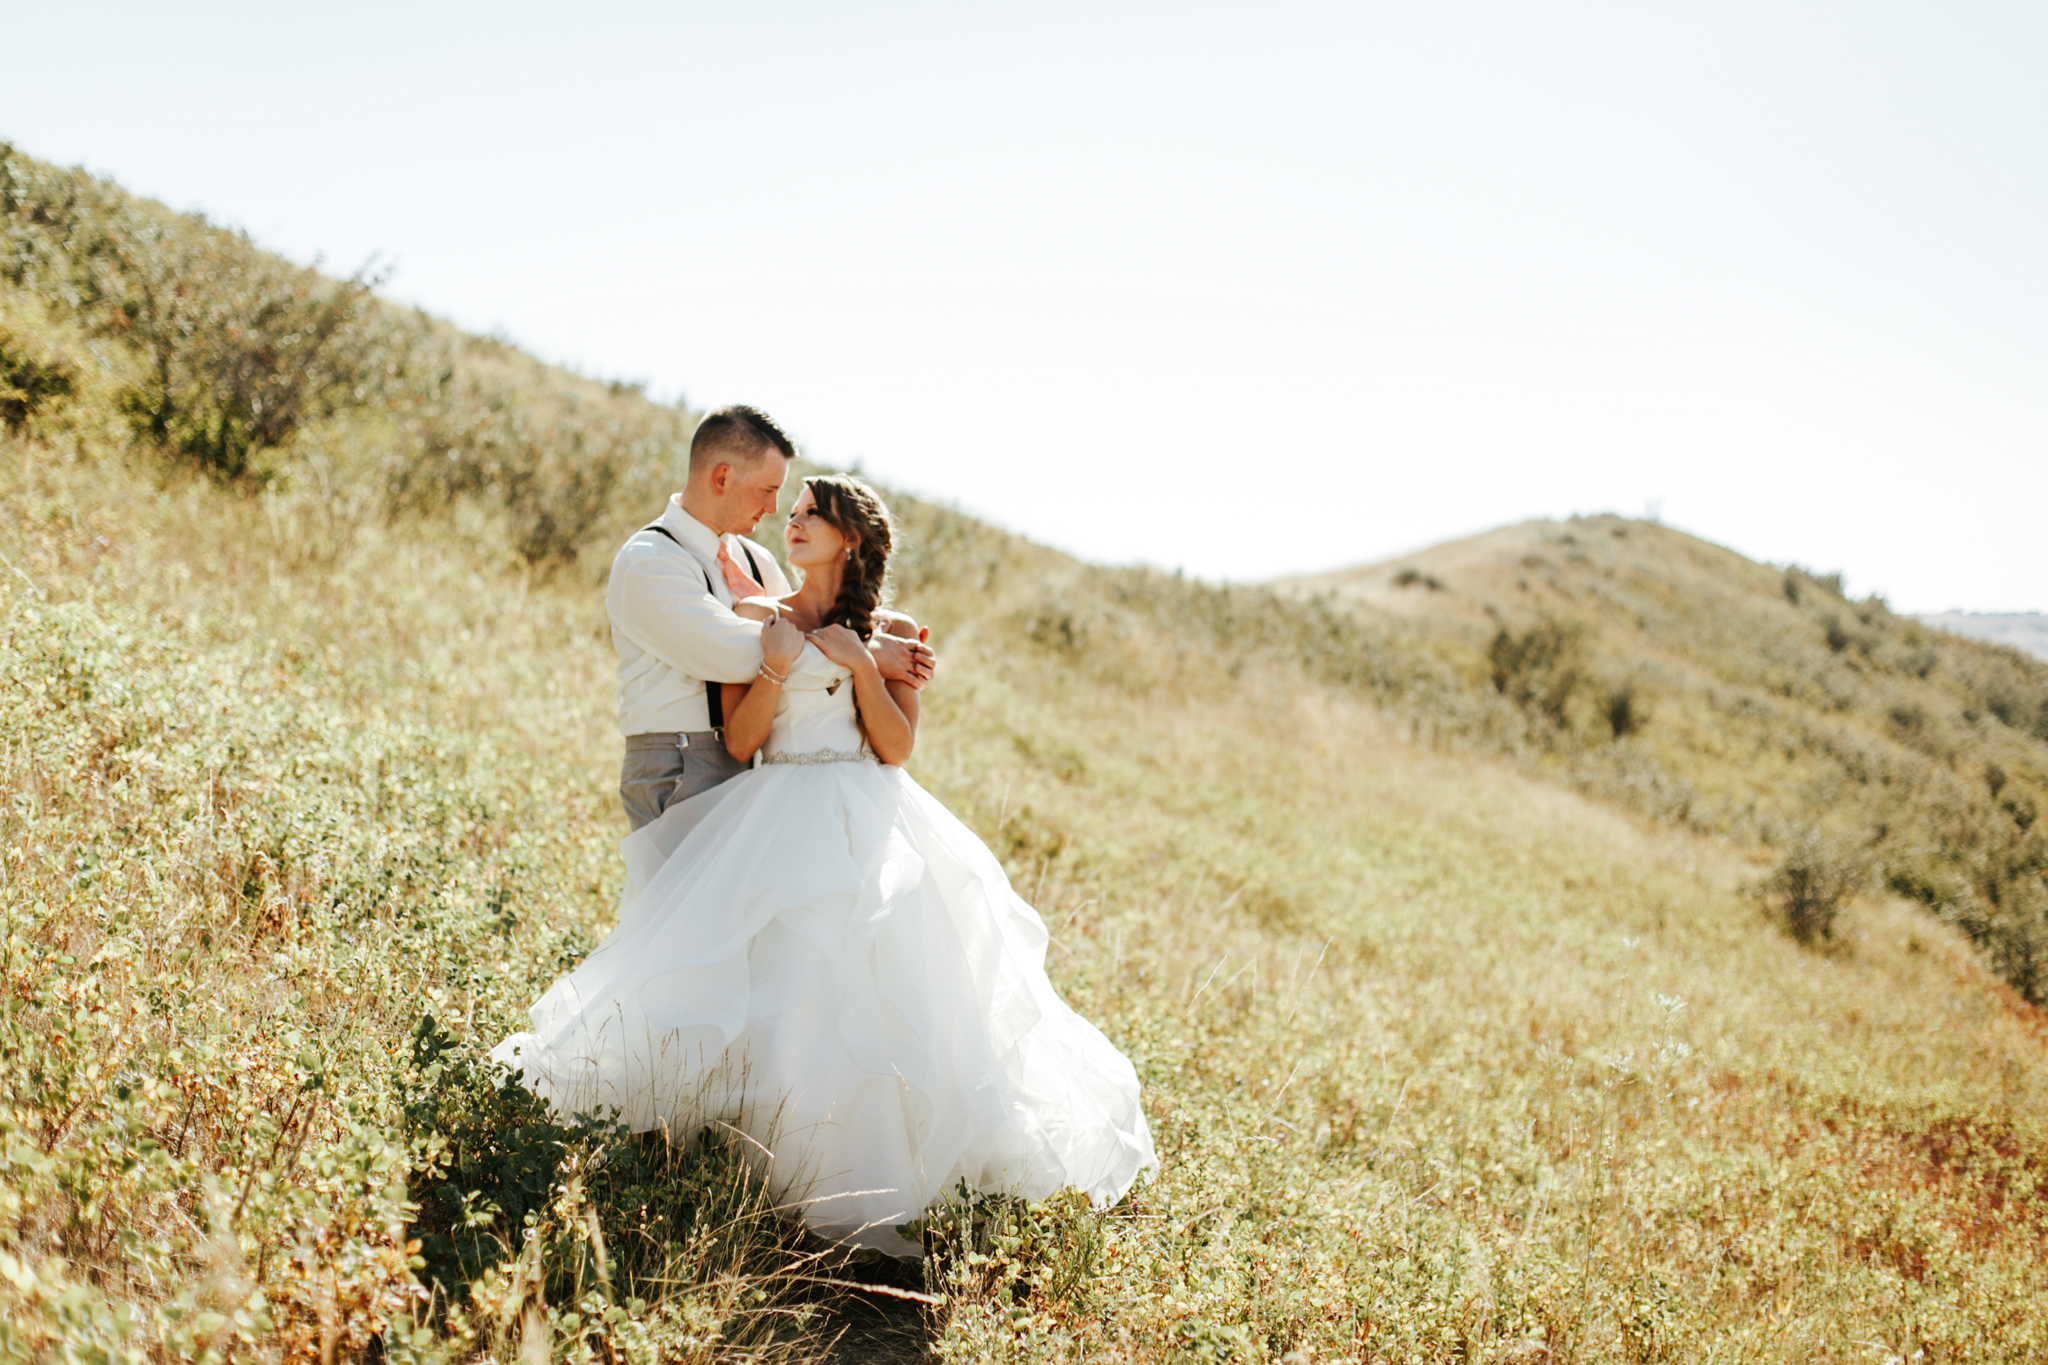 lethbridge-wedding-photography-love-and-be-loved-photographer-sean-sharla-henderson-lake-wedding-image-picture-photo-122.jpg